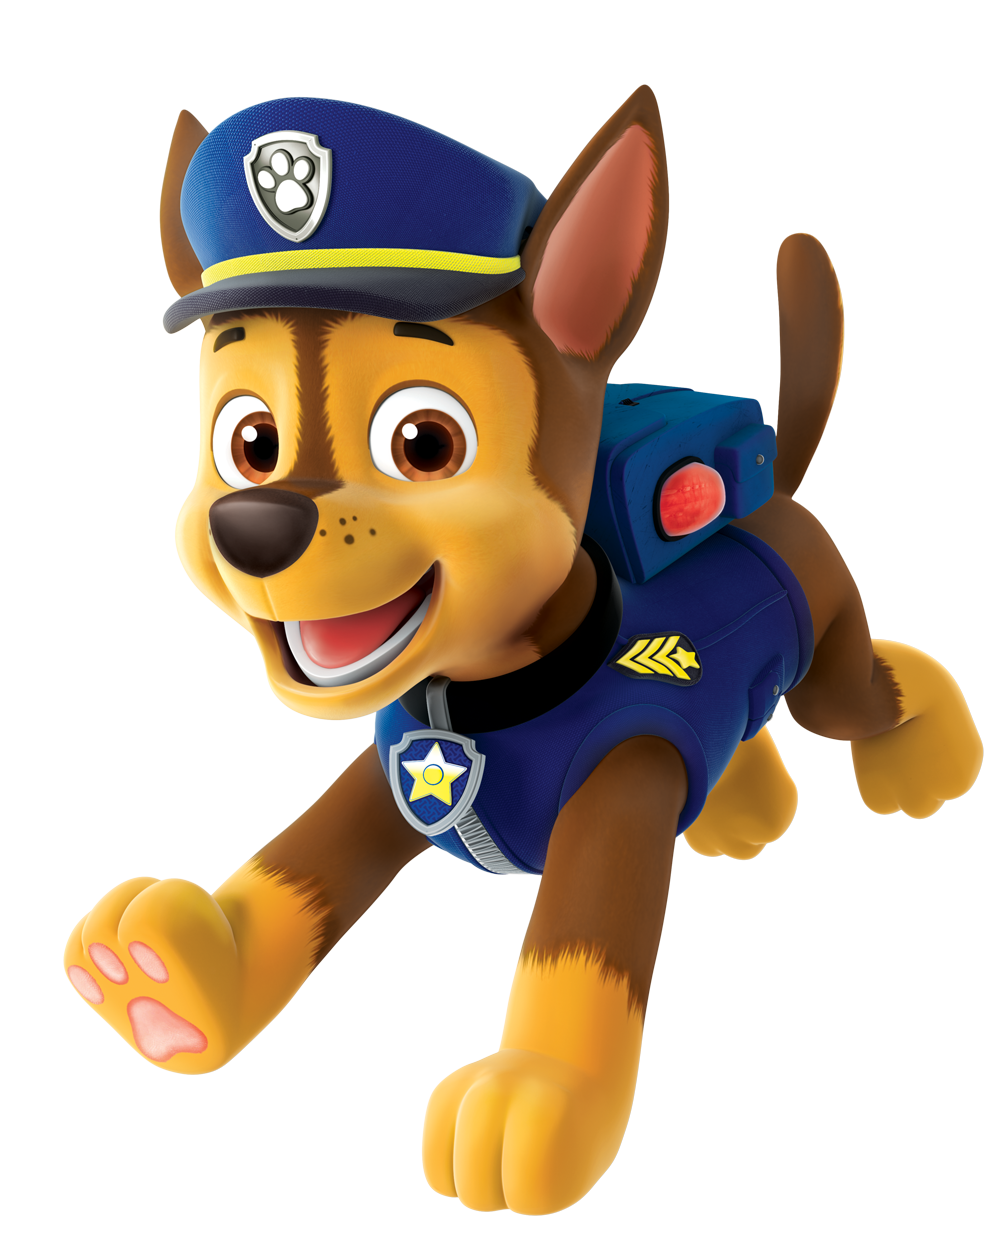 Chase Paw Patrol Clipart Png 10.